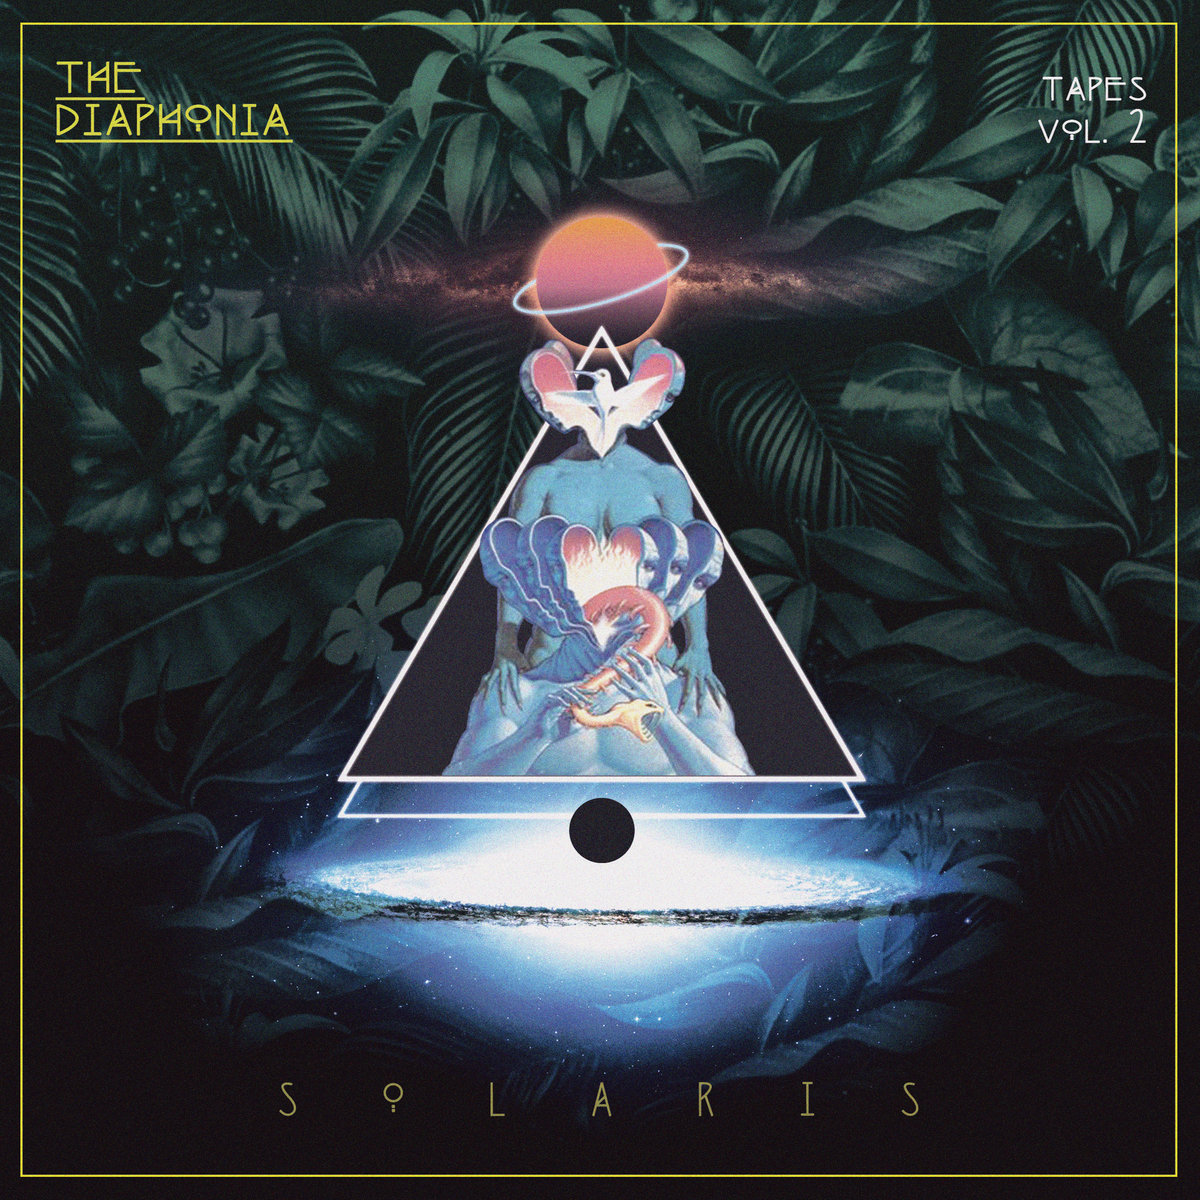 The Diaphonia Tapes vol. 2 – Solaris